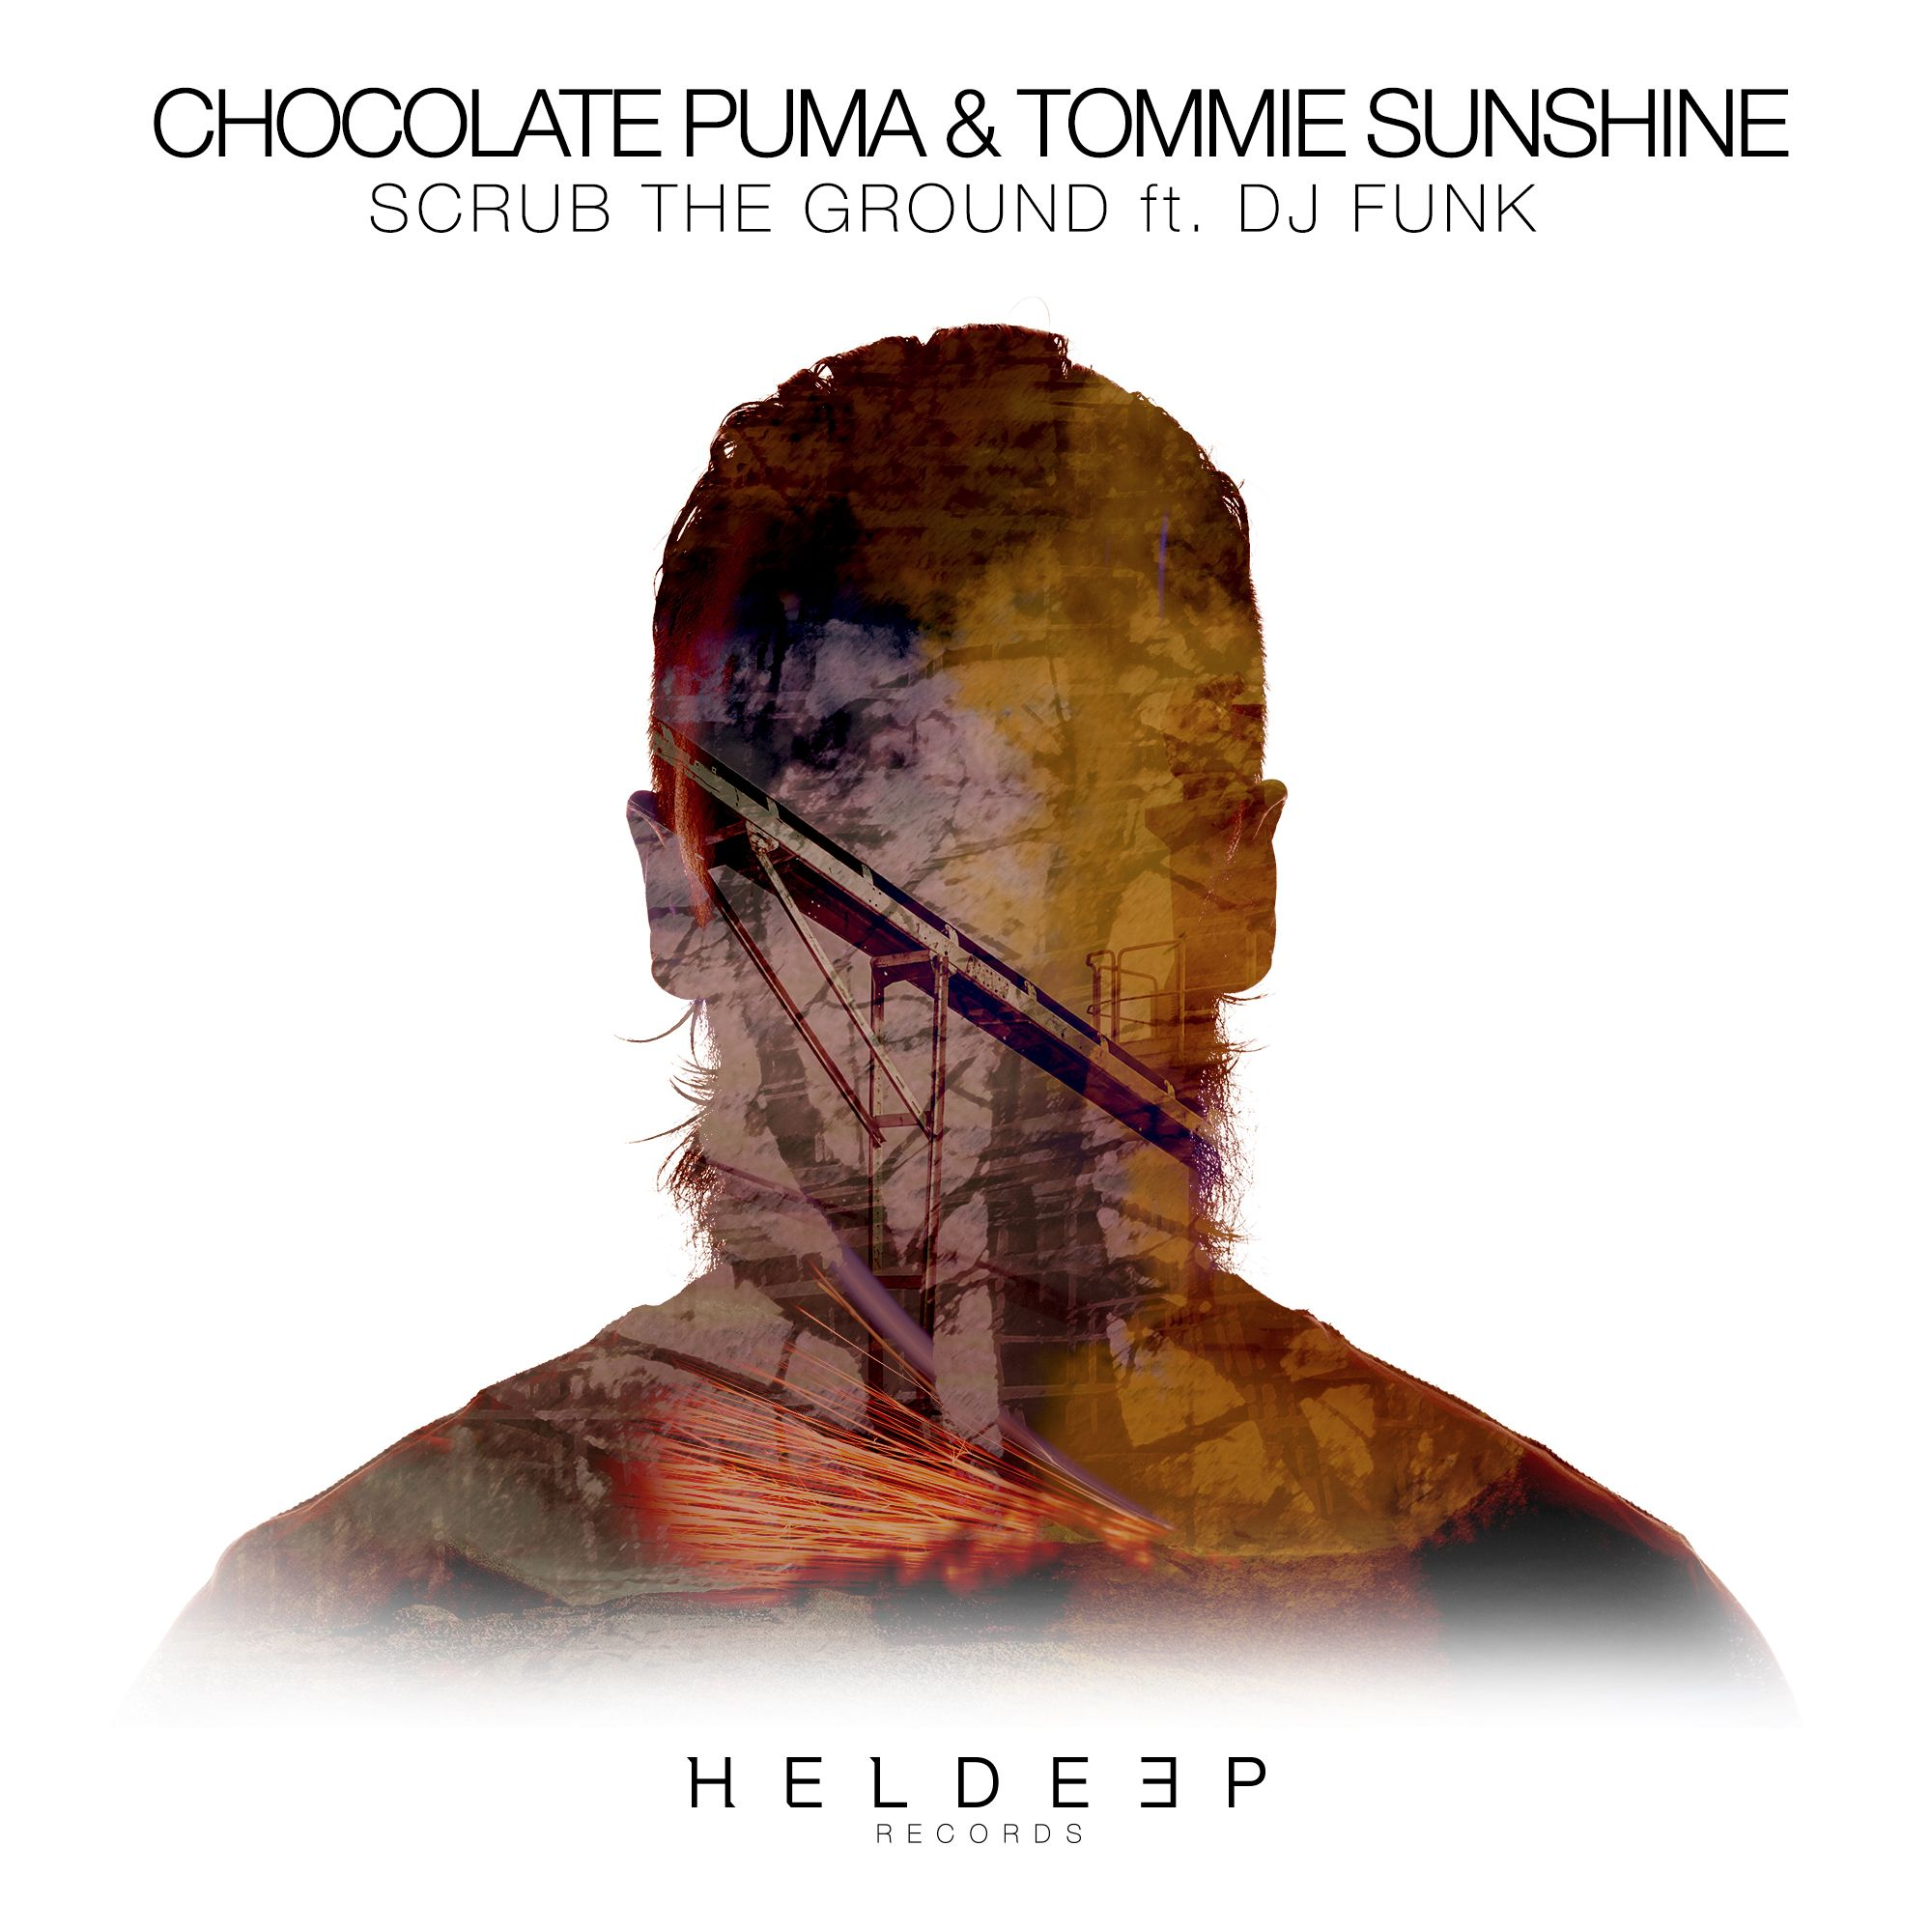 Chocolate Puma & Tommie Sunshine Feat. DJ Funk - Scrub The Ground (Radio Edit)